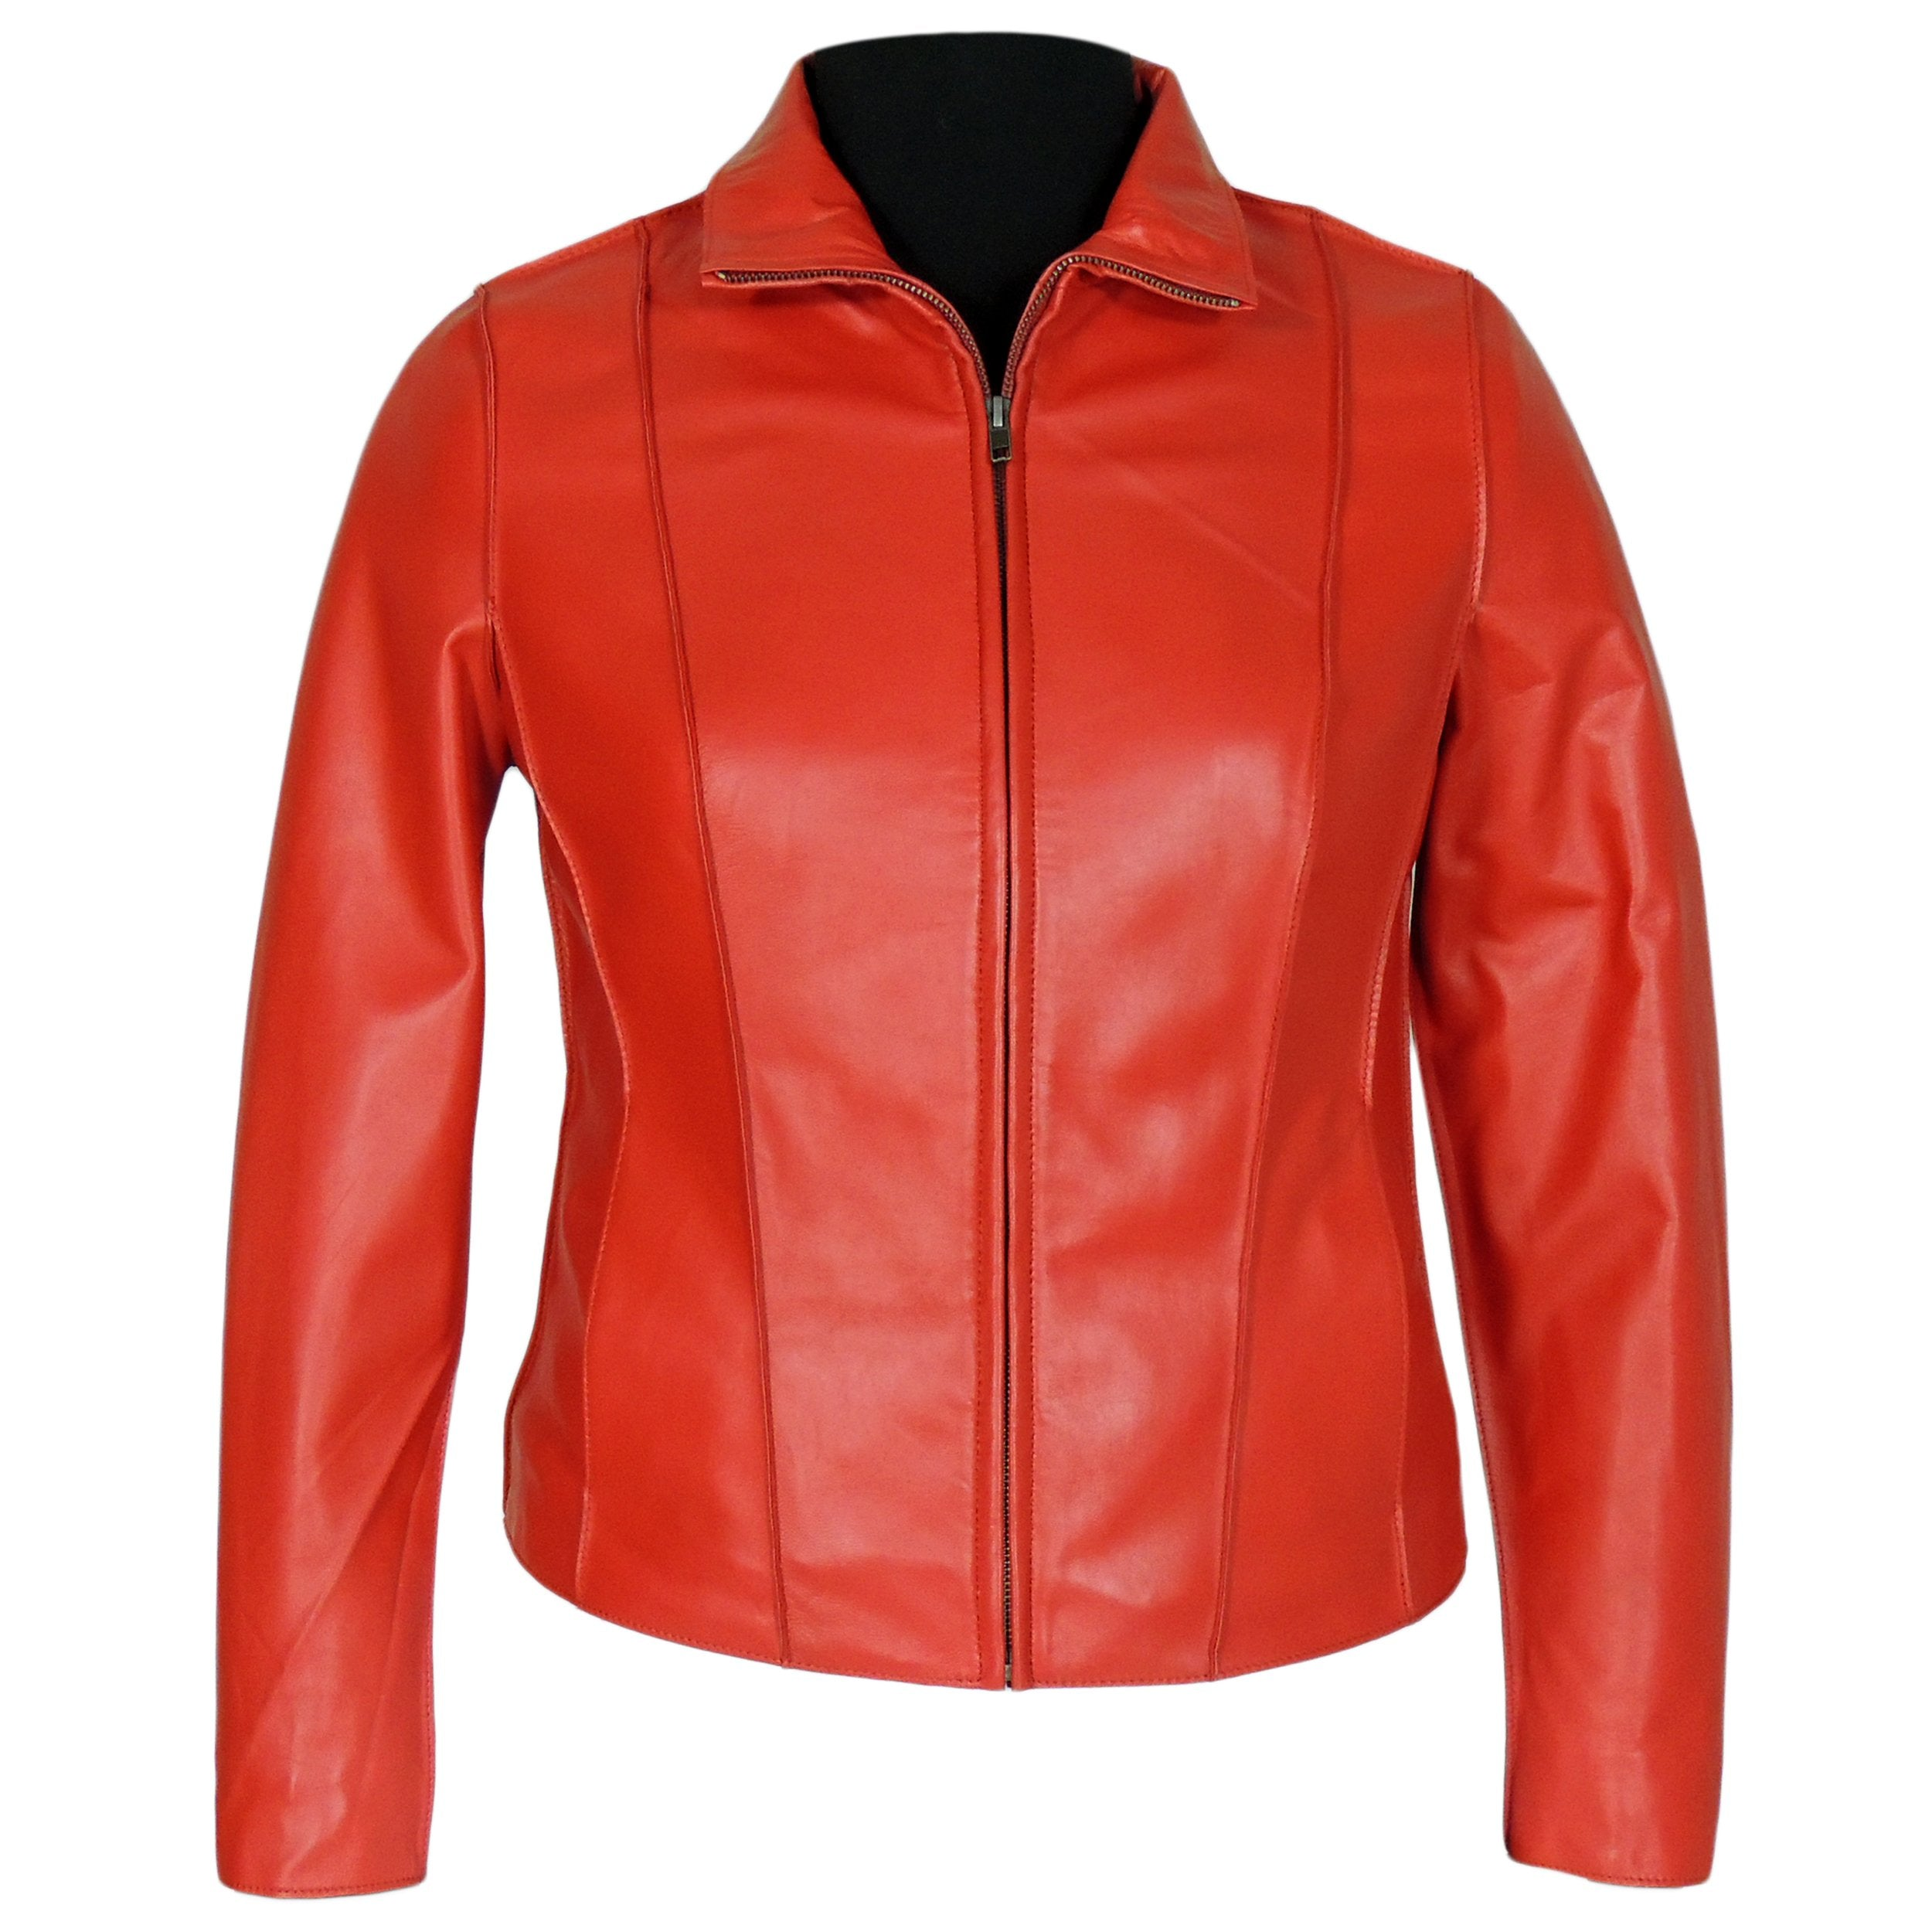 Aaliya Womens Sheepskin Leather Jacket, Red - Fadcloset